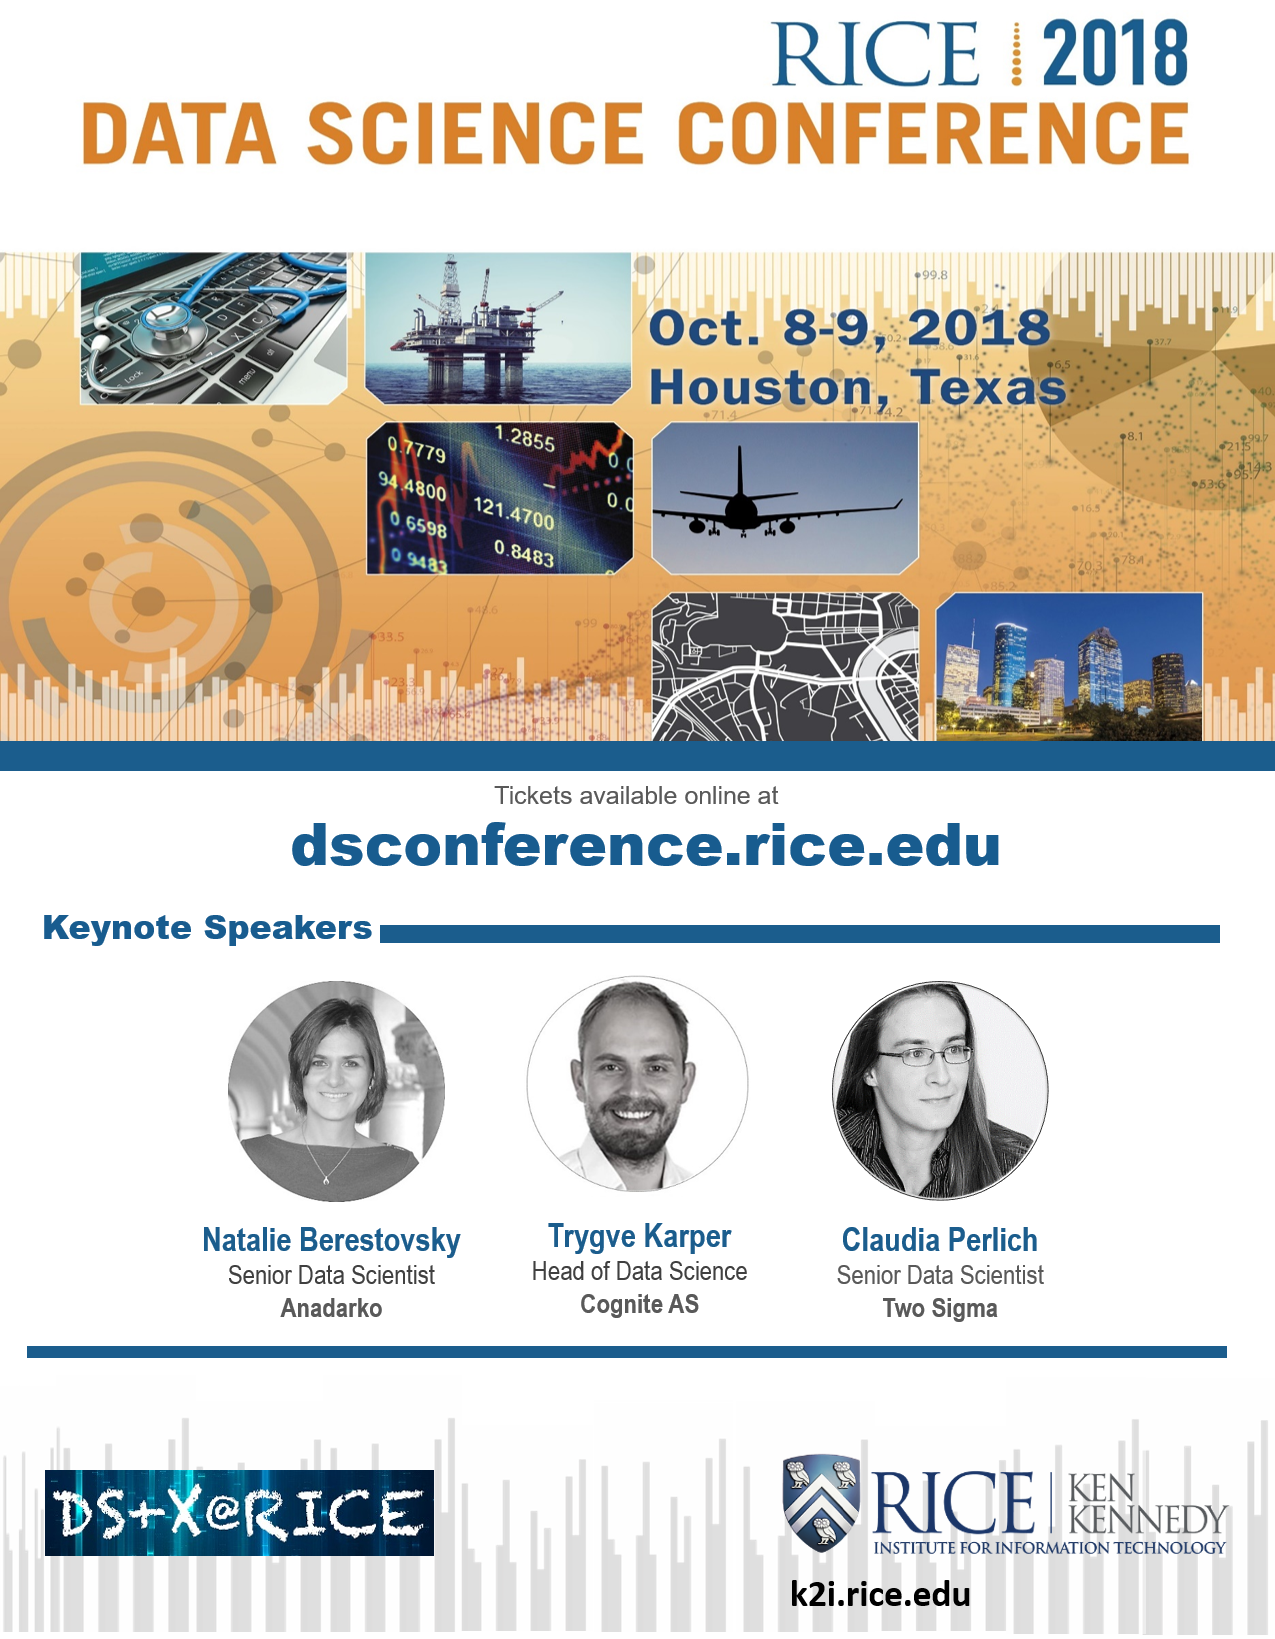 2018 Rice Data Science Conference Speakers